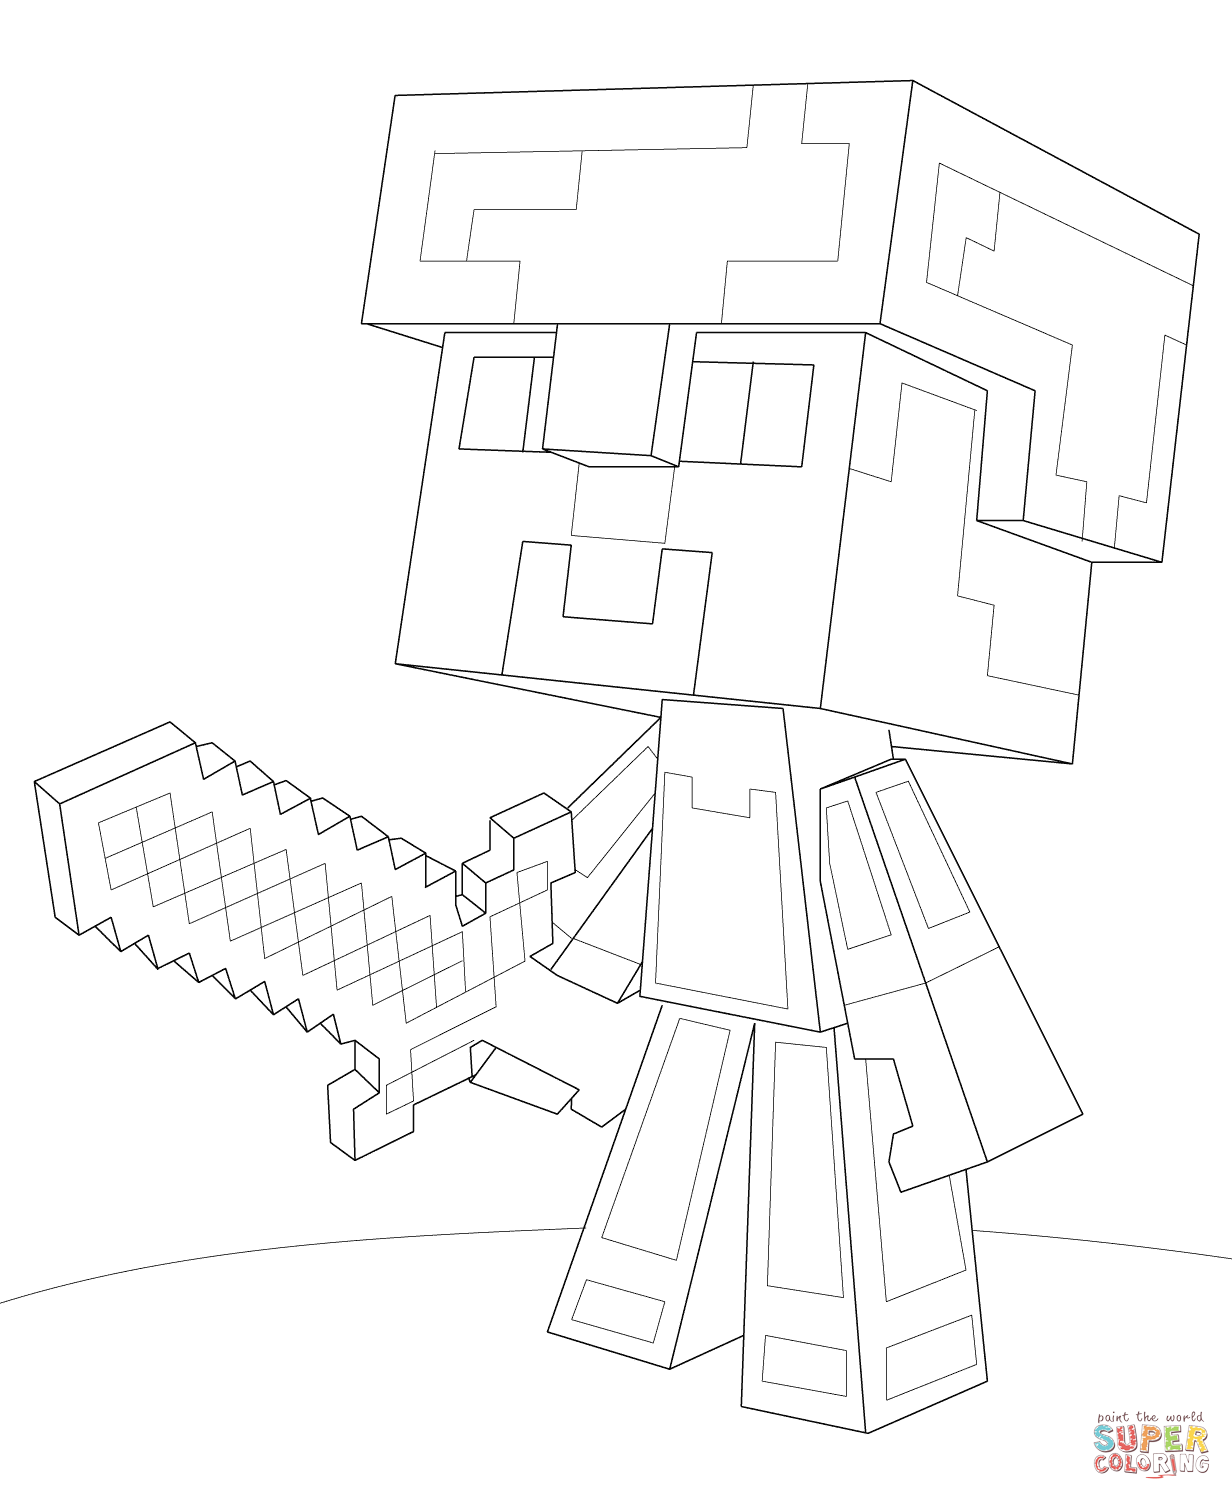 Minecraft Steve Diamond Armor Coloring Page From Minecraft Category Select From 27007 Printable Minecraft Printables Minecraft Coloring Pages Minecraft Steve